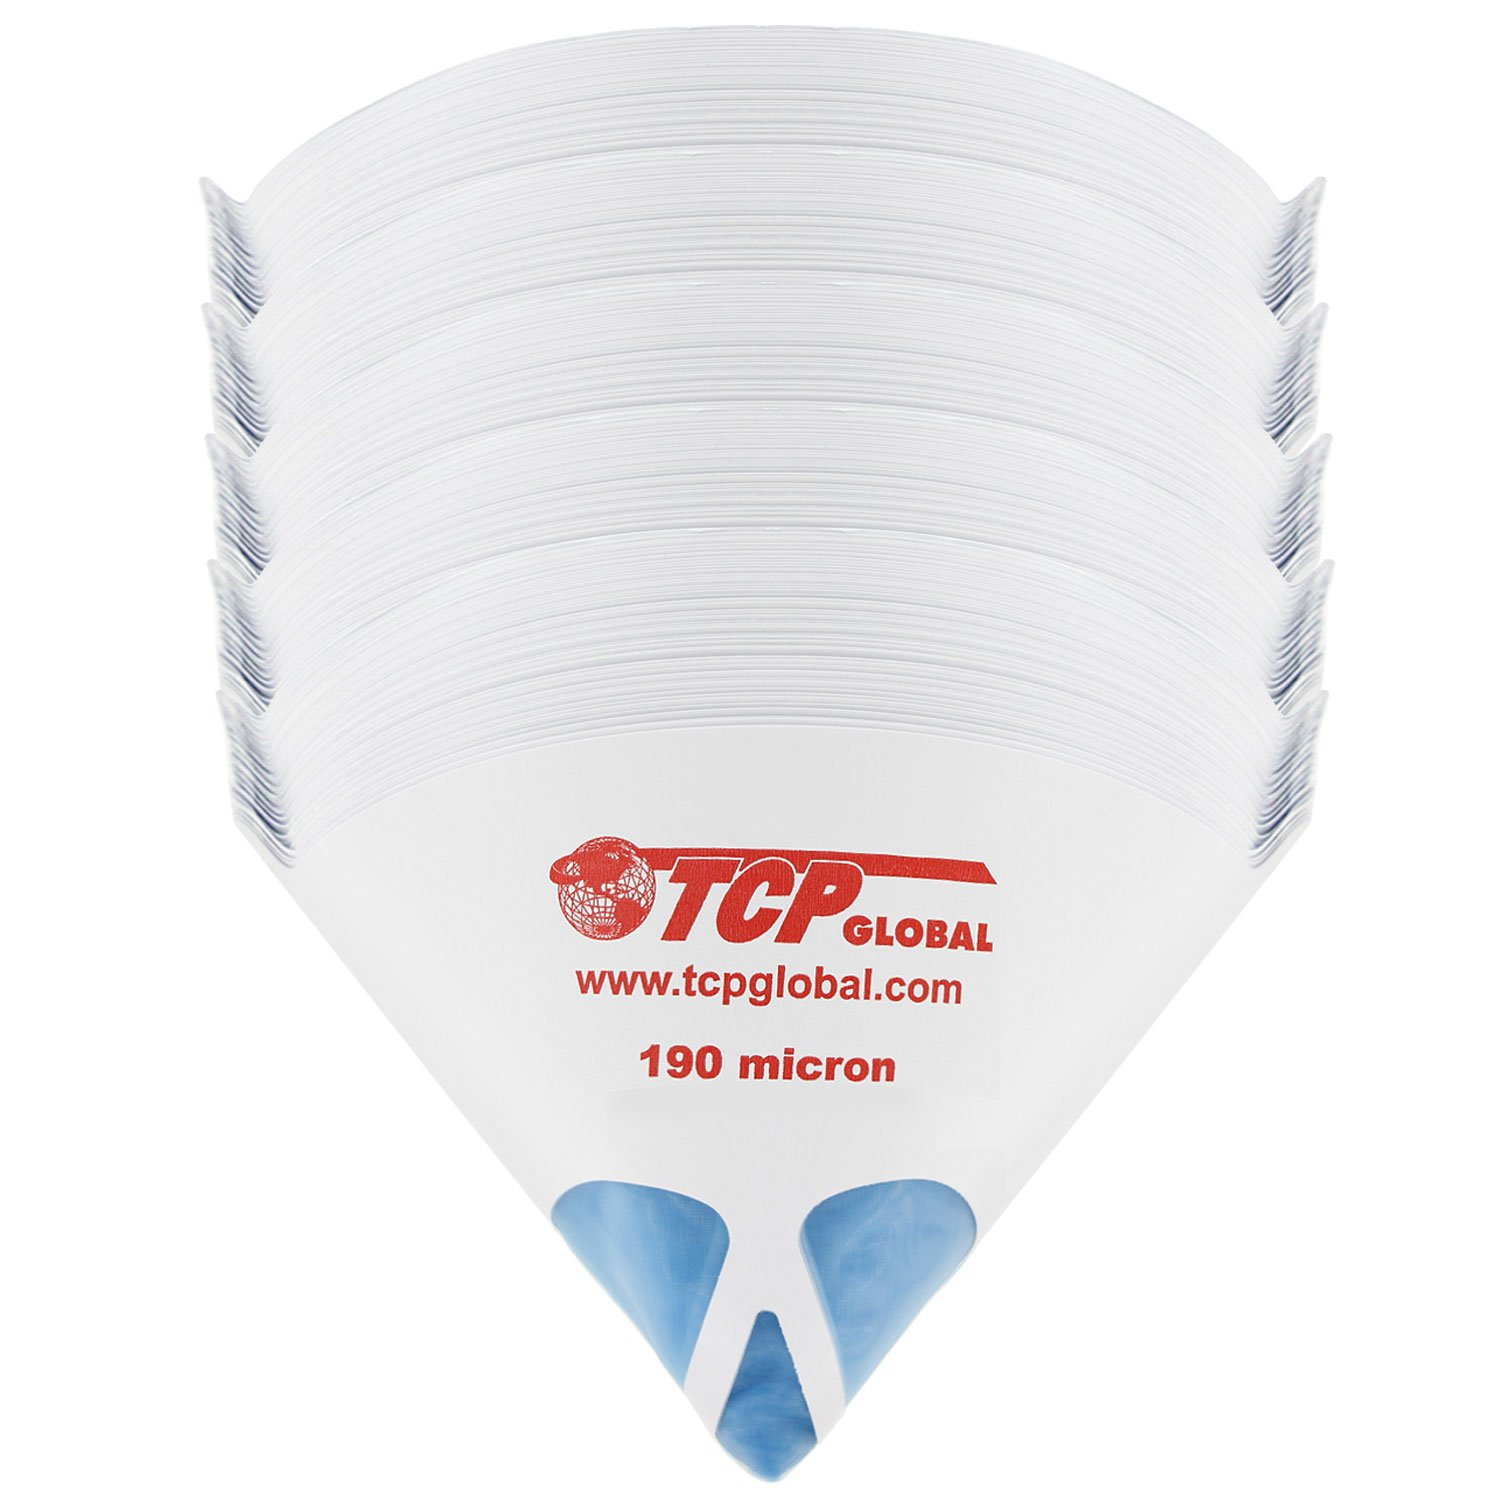 TCP Global 250 Pack of Paint Strainers with Fine 190 Micron Filter Tips - Premium ''PURE BLUE'' Ultra-Flow Blue Nylon Mesh - Cone Paint Filter Screen